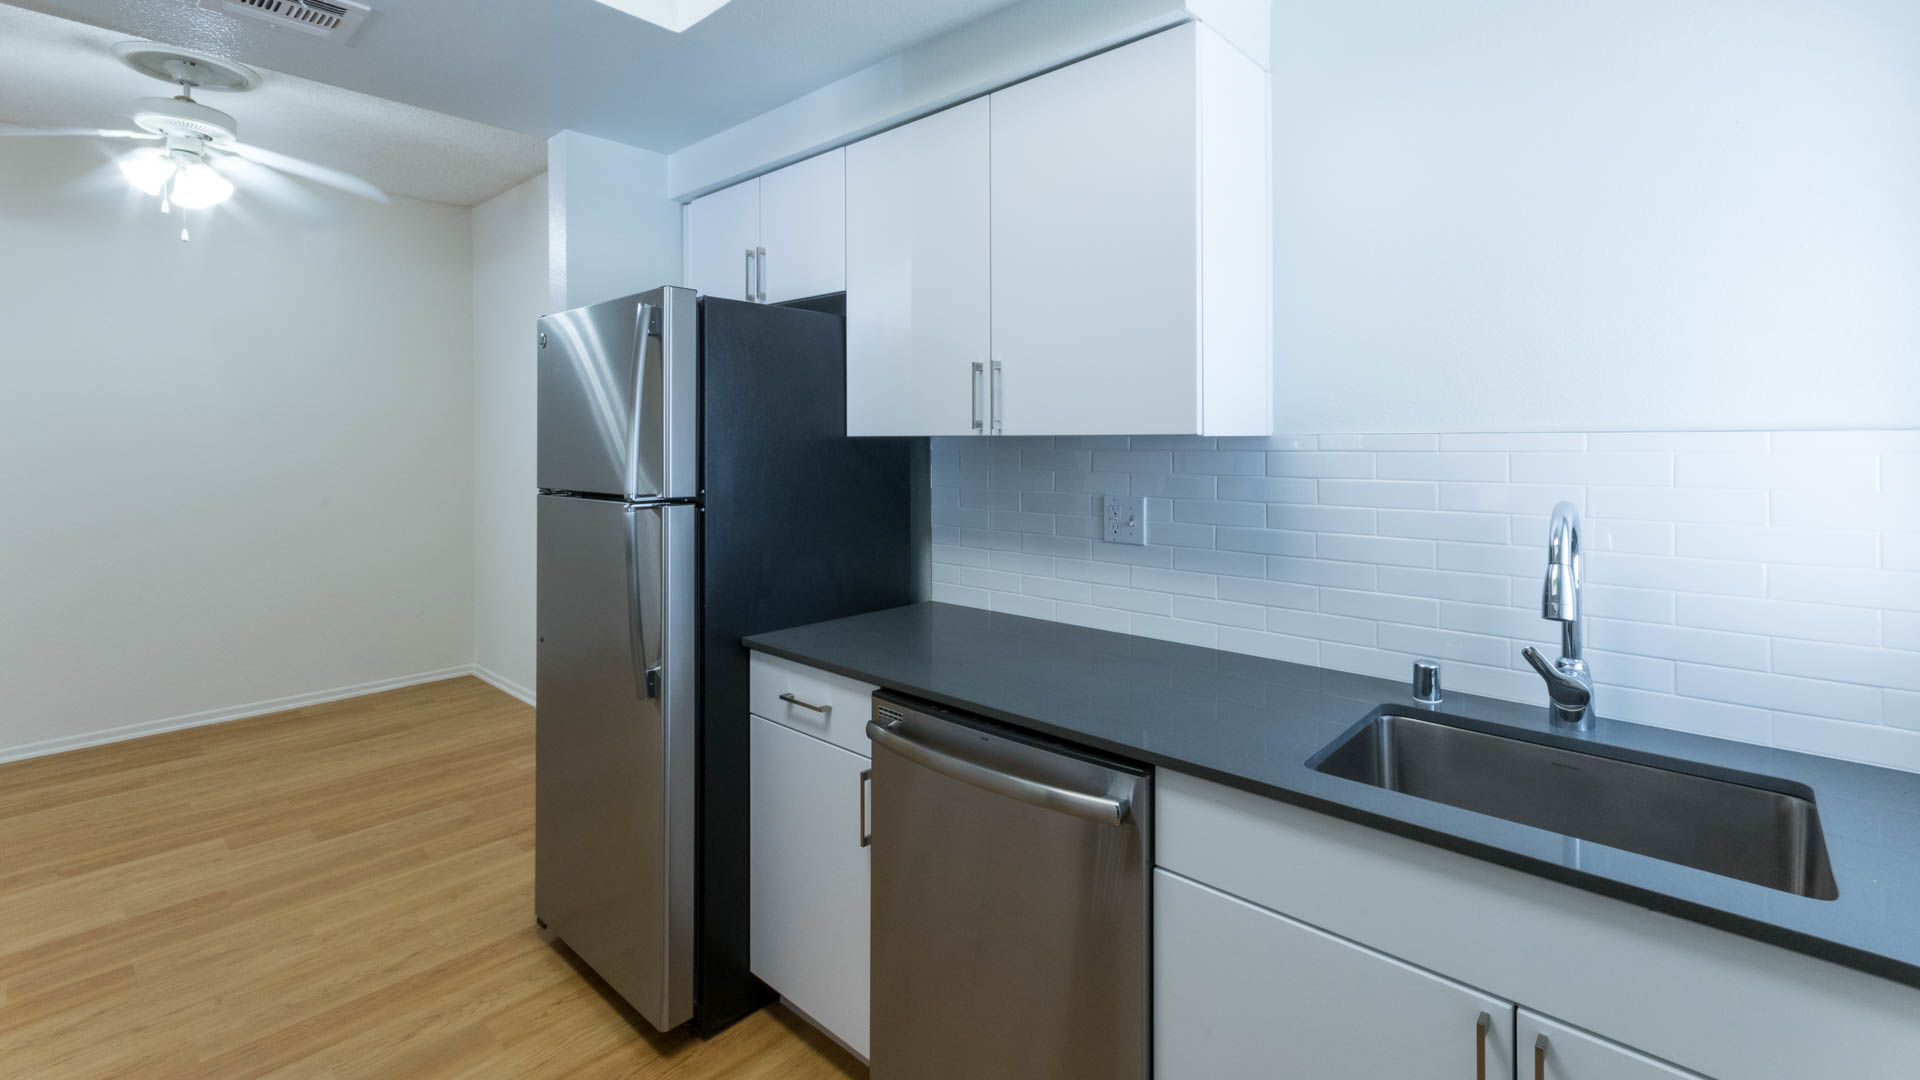 Northglen Apartments - Kitchen